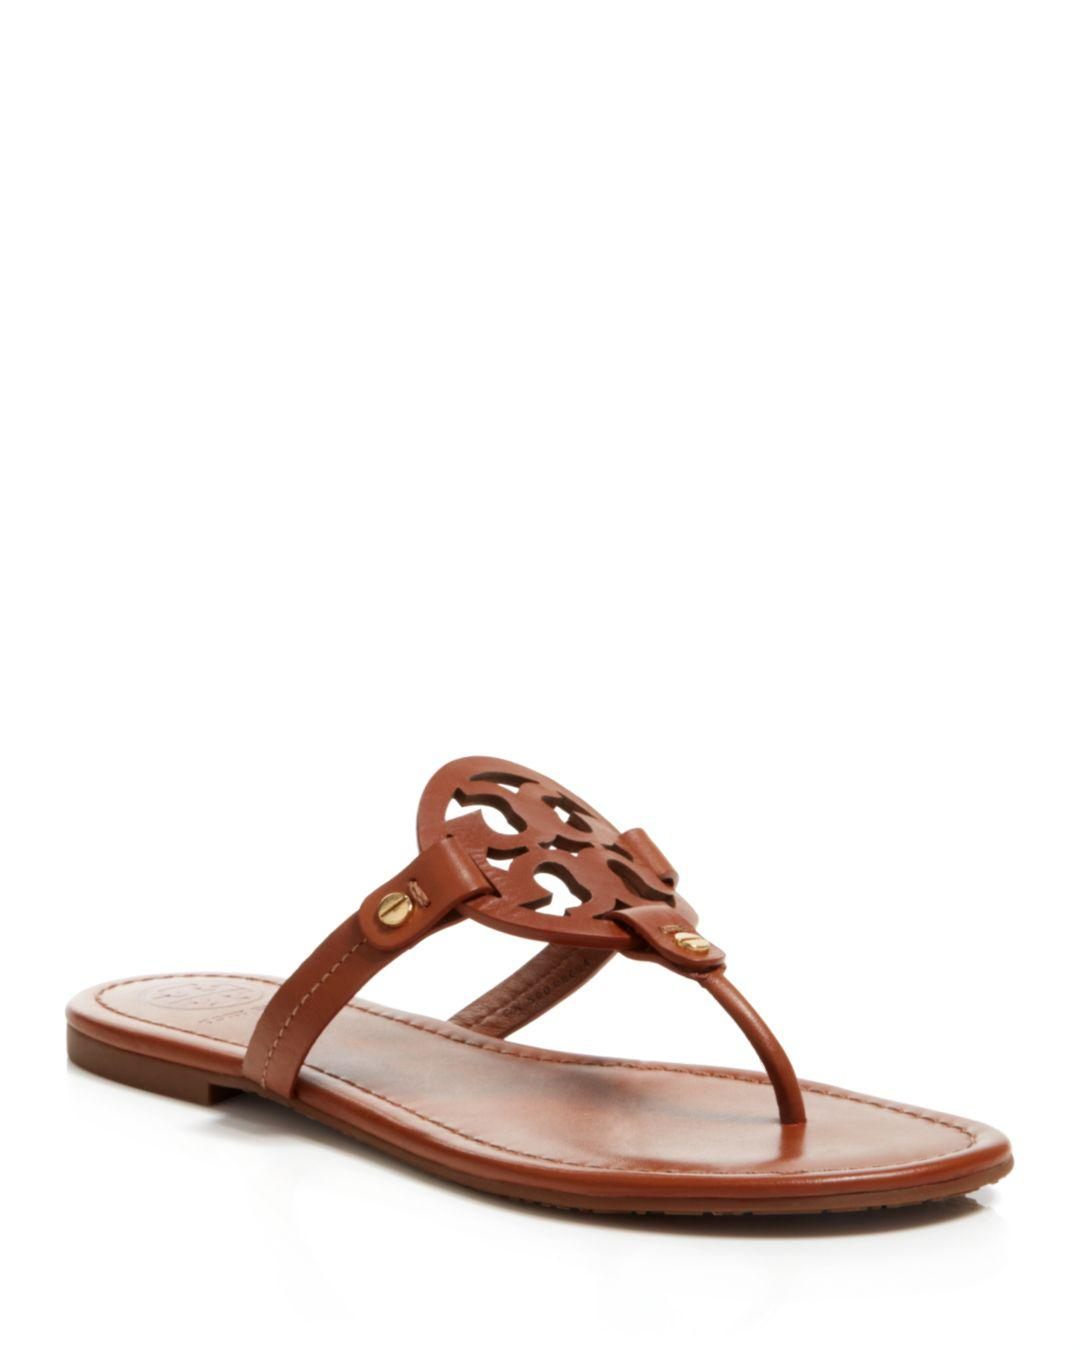 8019116d1016d Lyst - Tory Burch Flat Thong Sandals - Miller in Brown - Save 19%